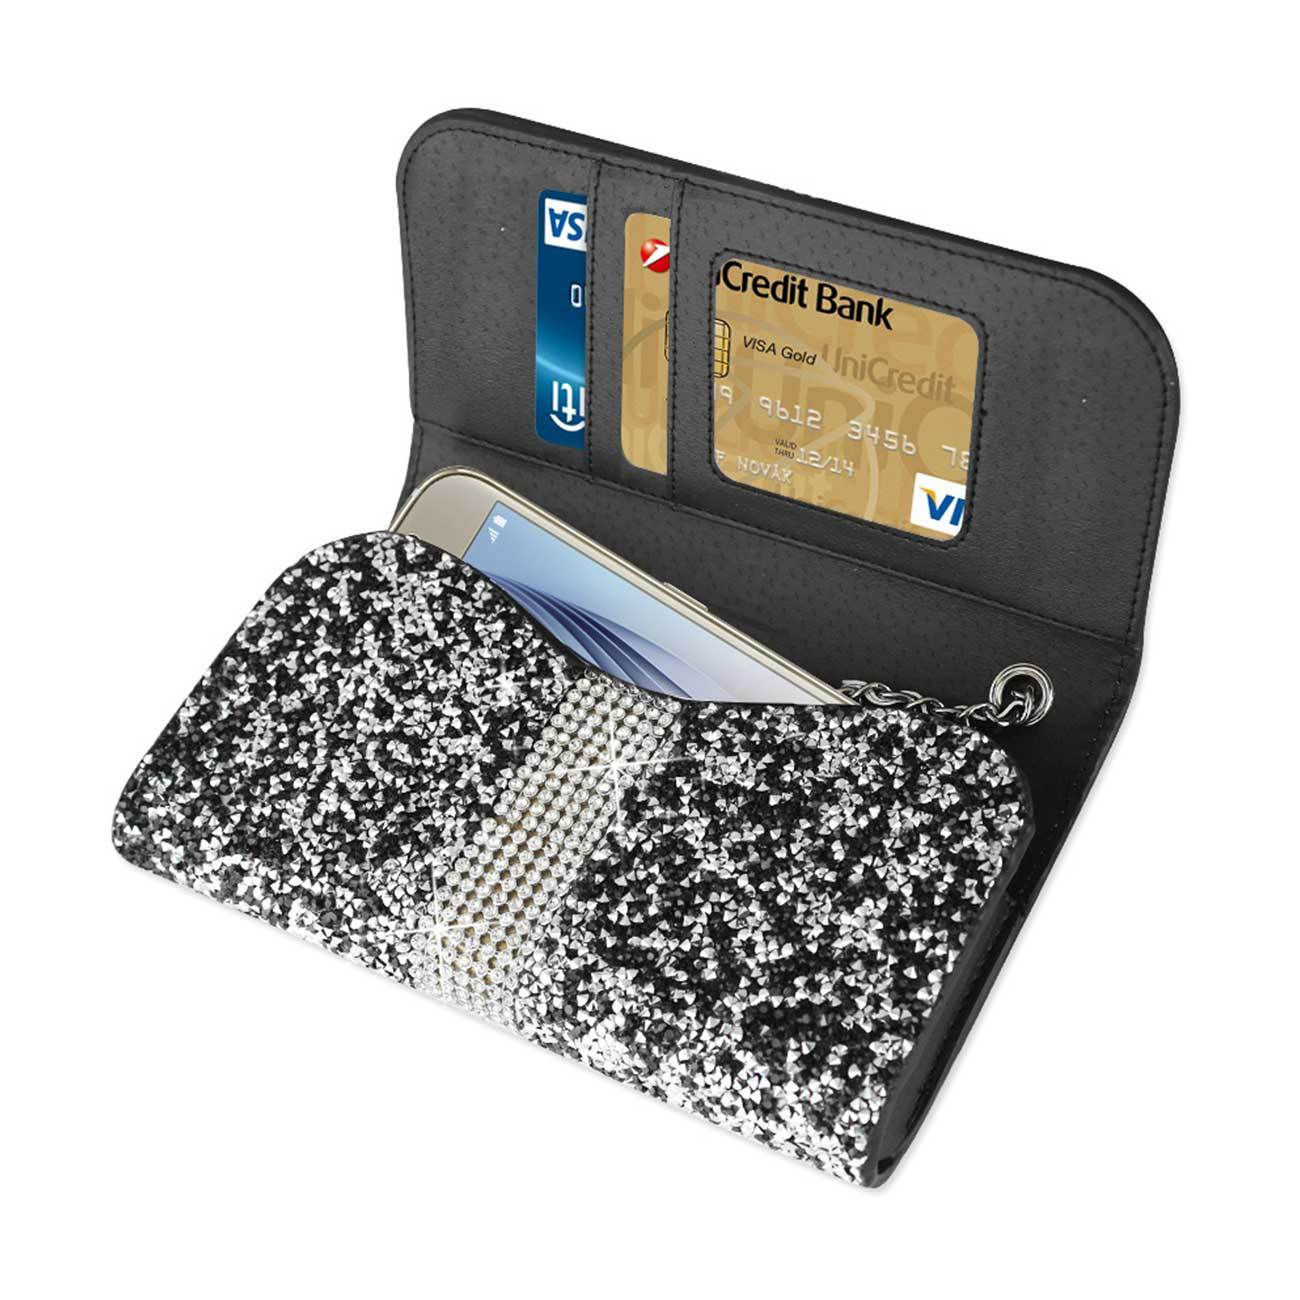 Black Bling Sparkling Credit Card Wallet Case fits Samsung Galaxy s4 Active